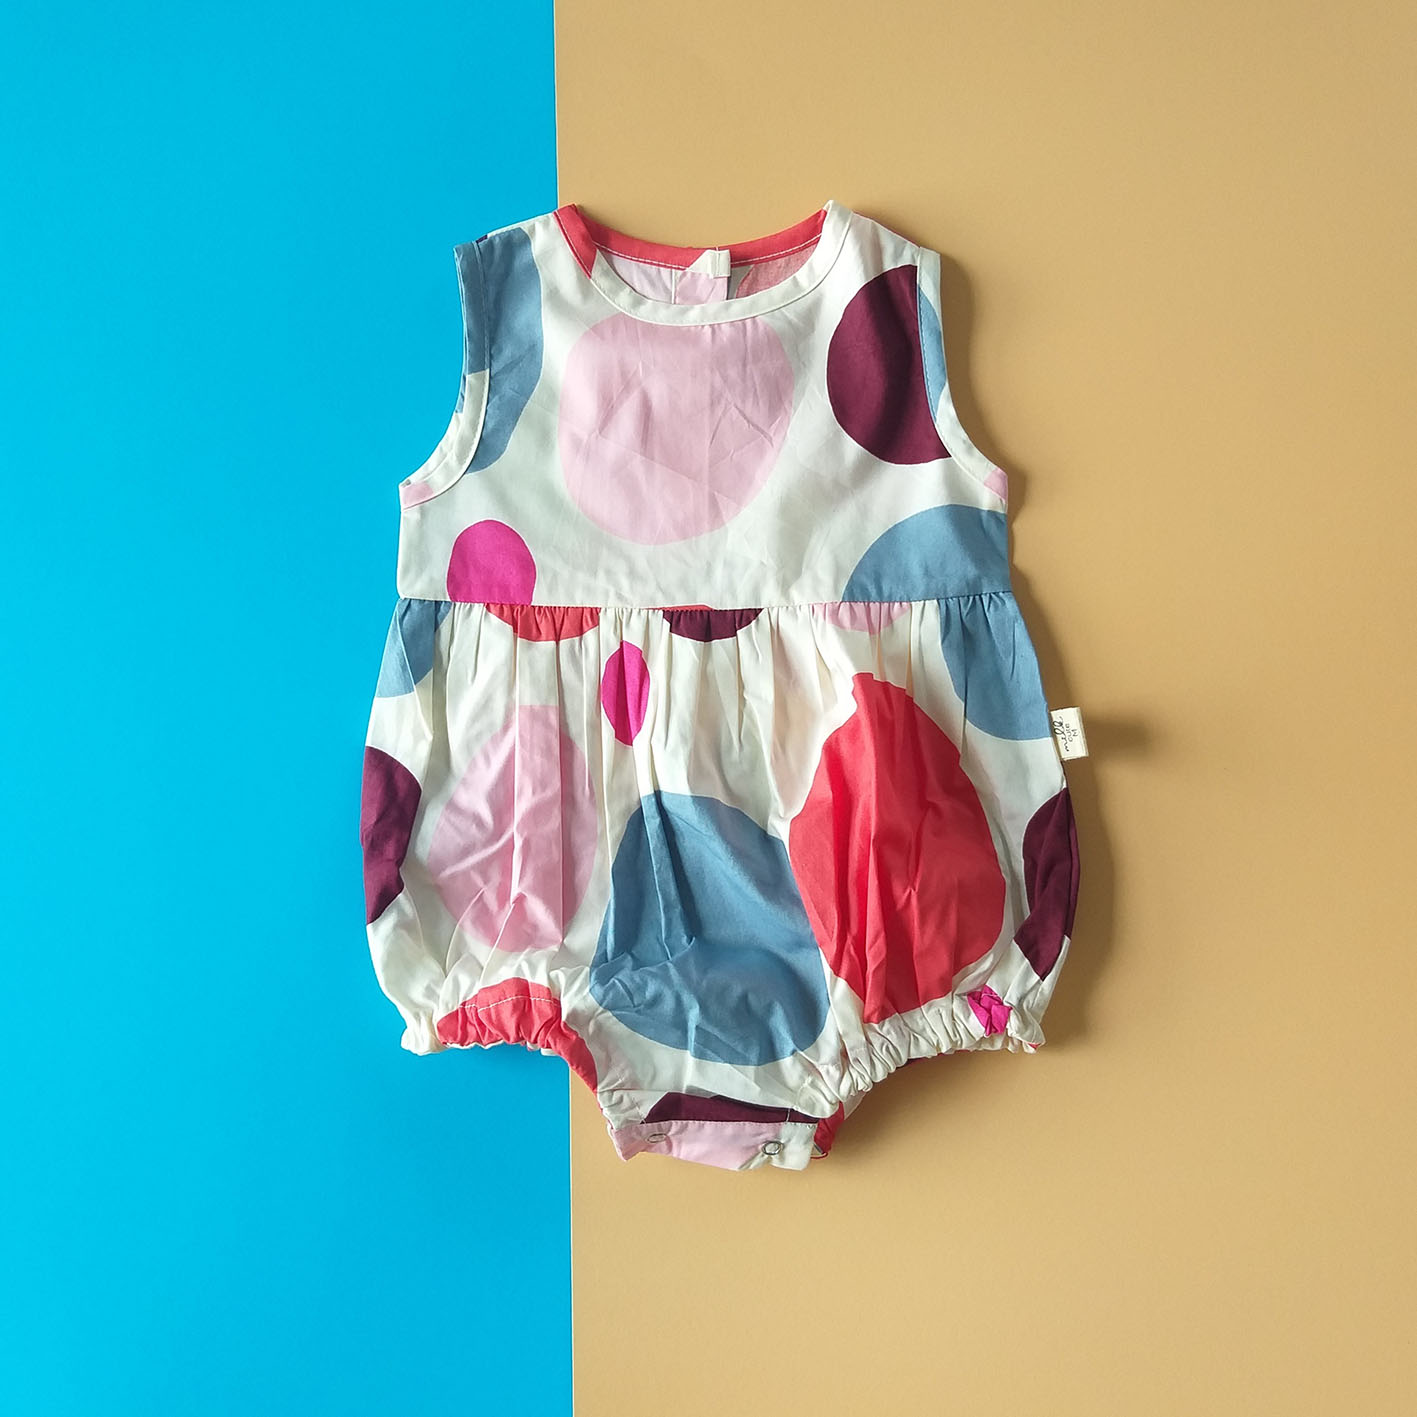 GIRLS BUTTONS BACK POLKADOT ROMPER / 100% PRINTED COTTON